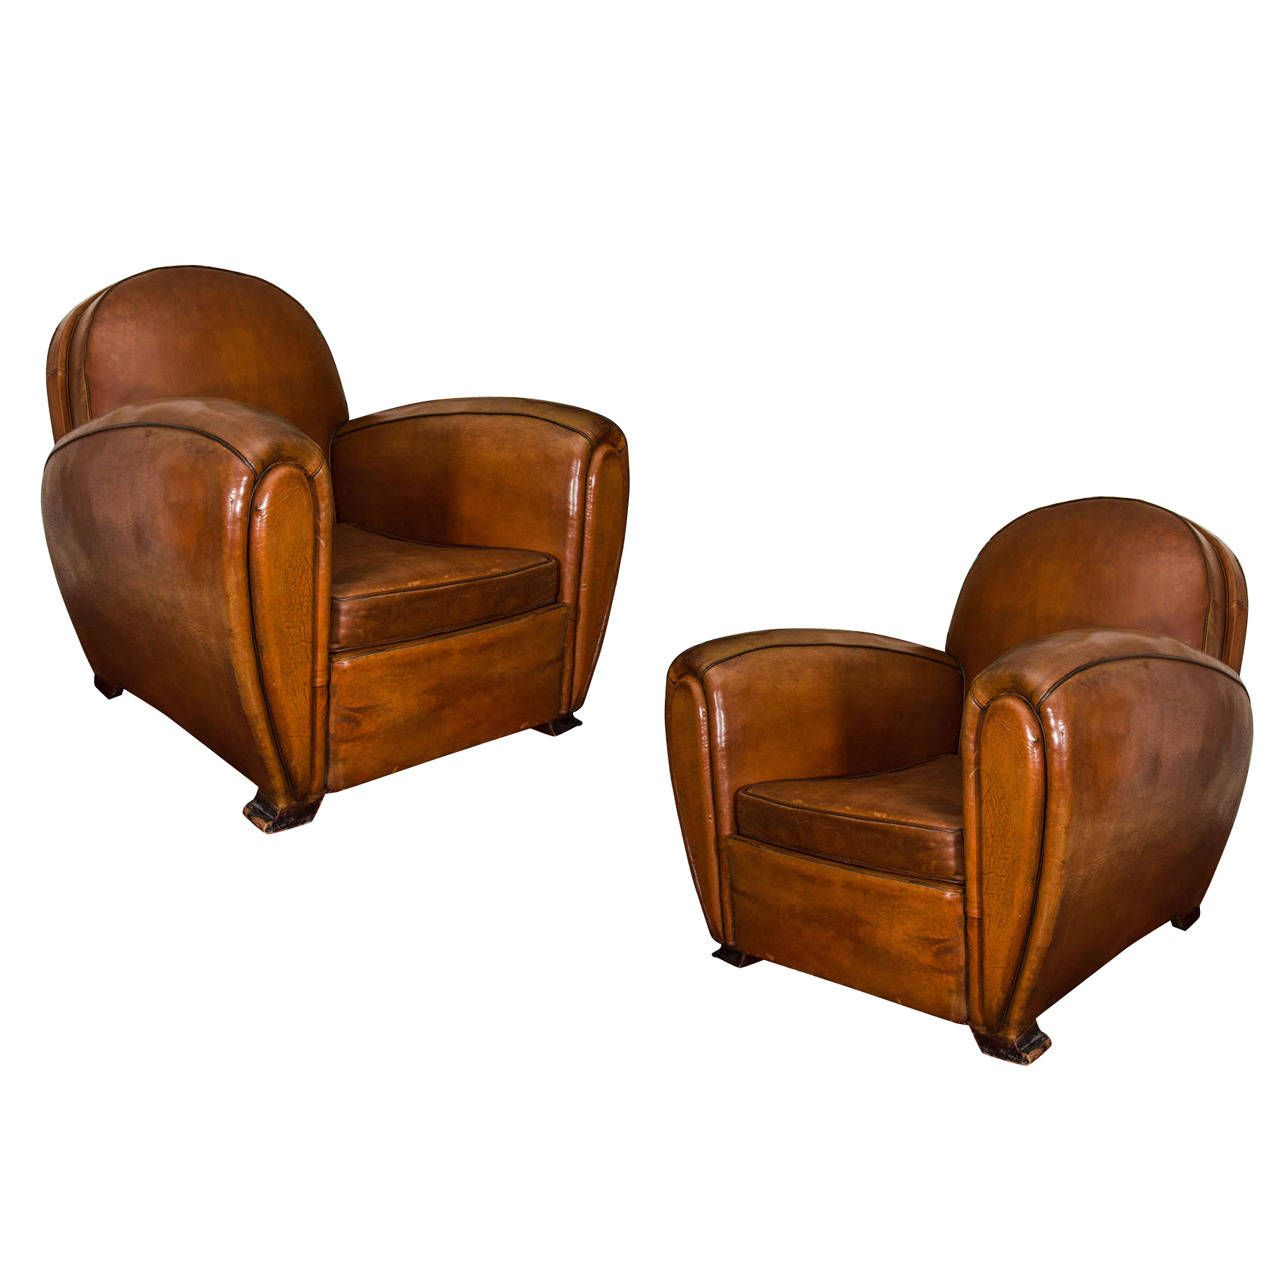 French Round Back Leather Club Chairs